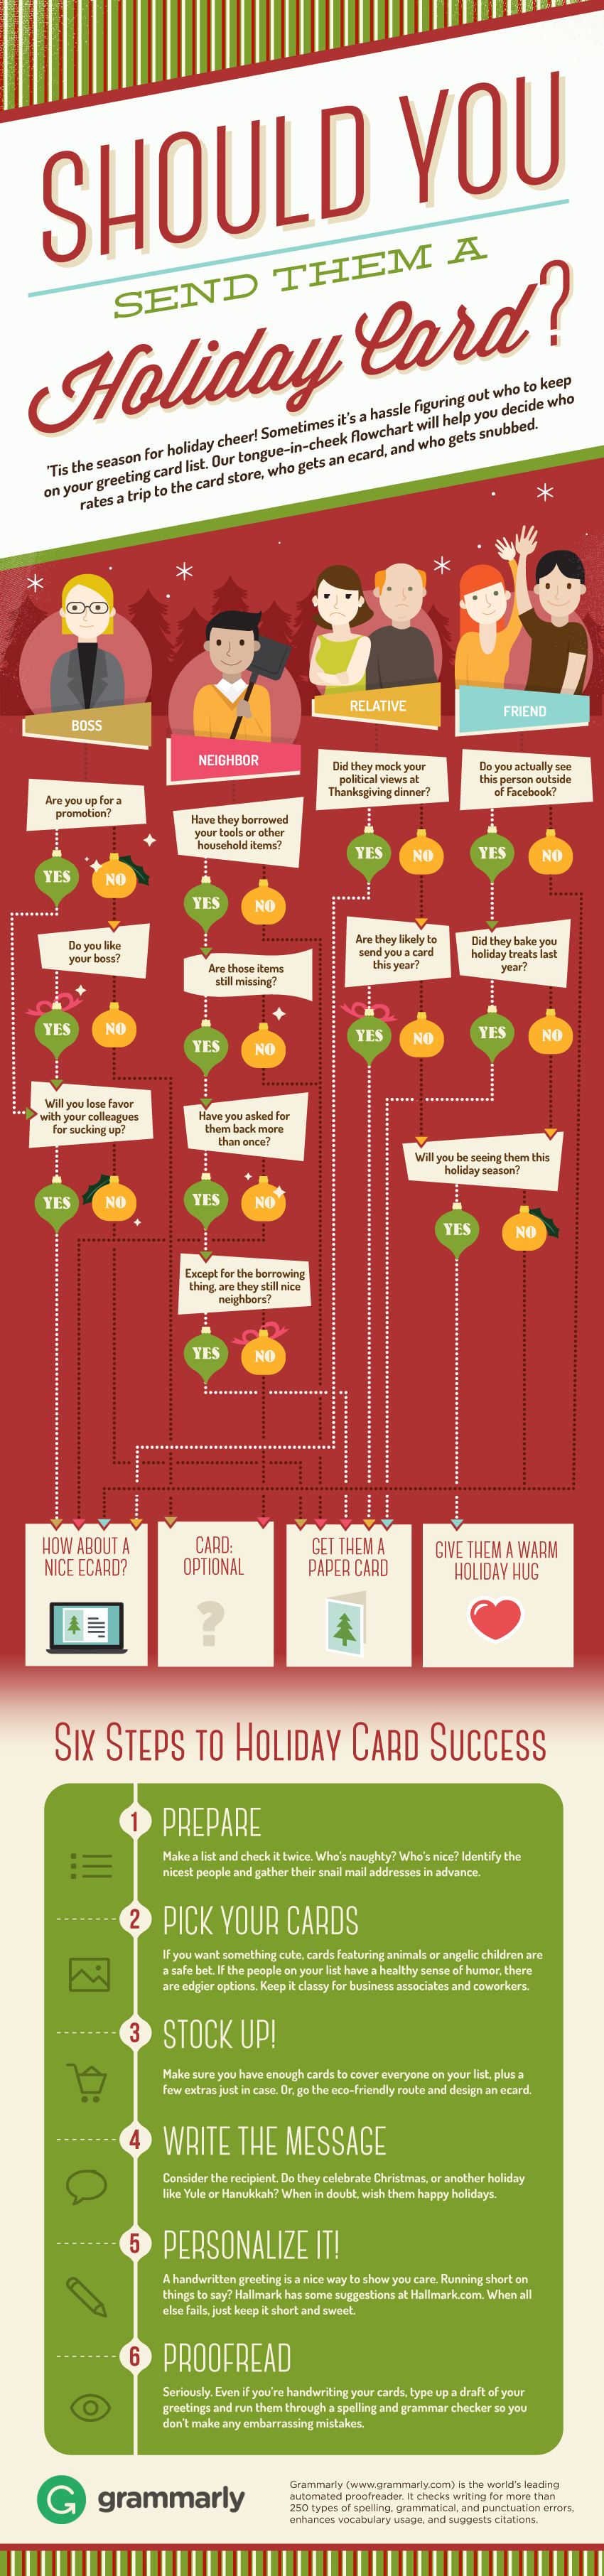 Should you send them a holiday card infographic 2